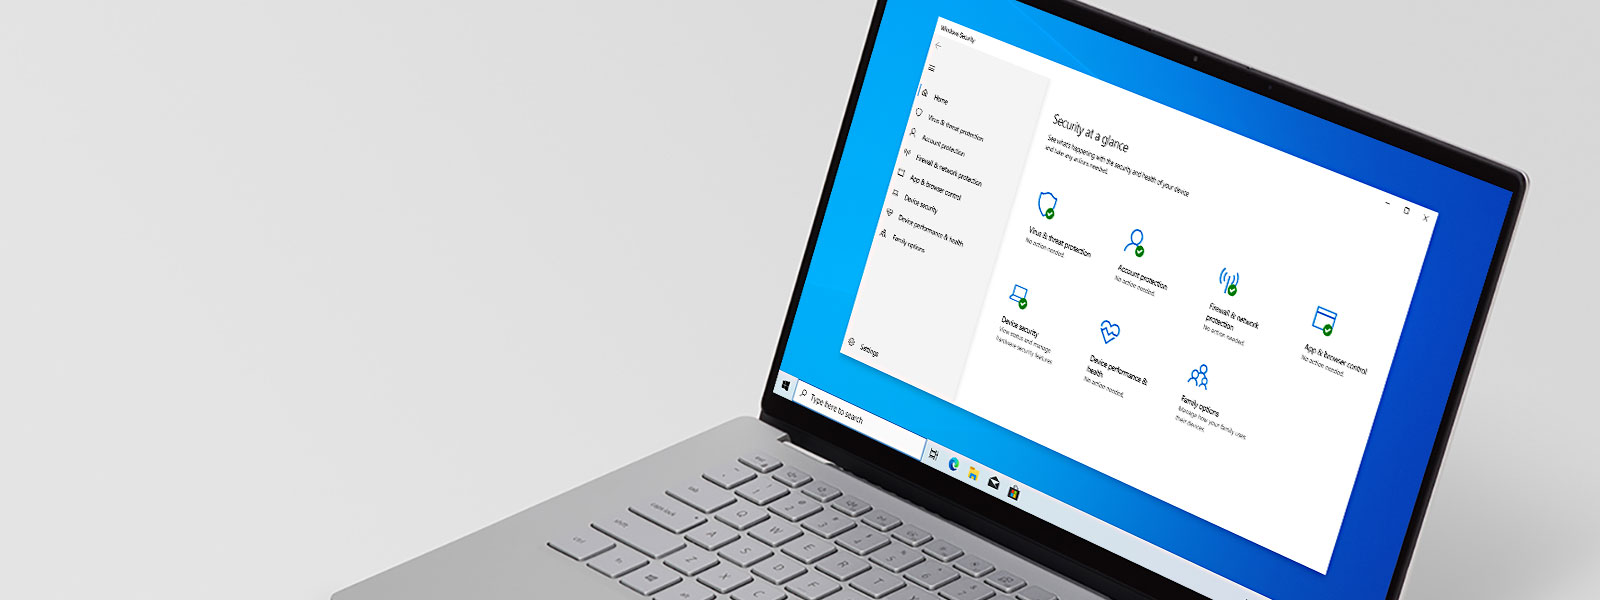 Windows 10-Laptop mit angezeigtem Microsoft Defender Antivirus-Fenster